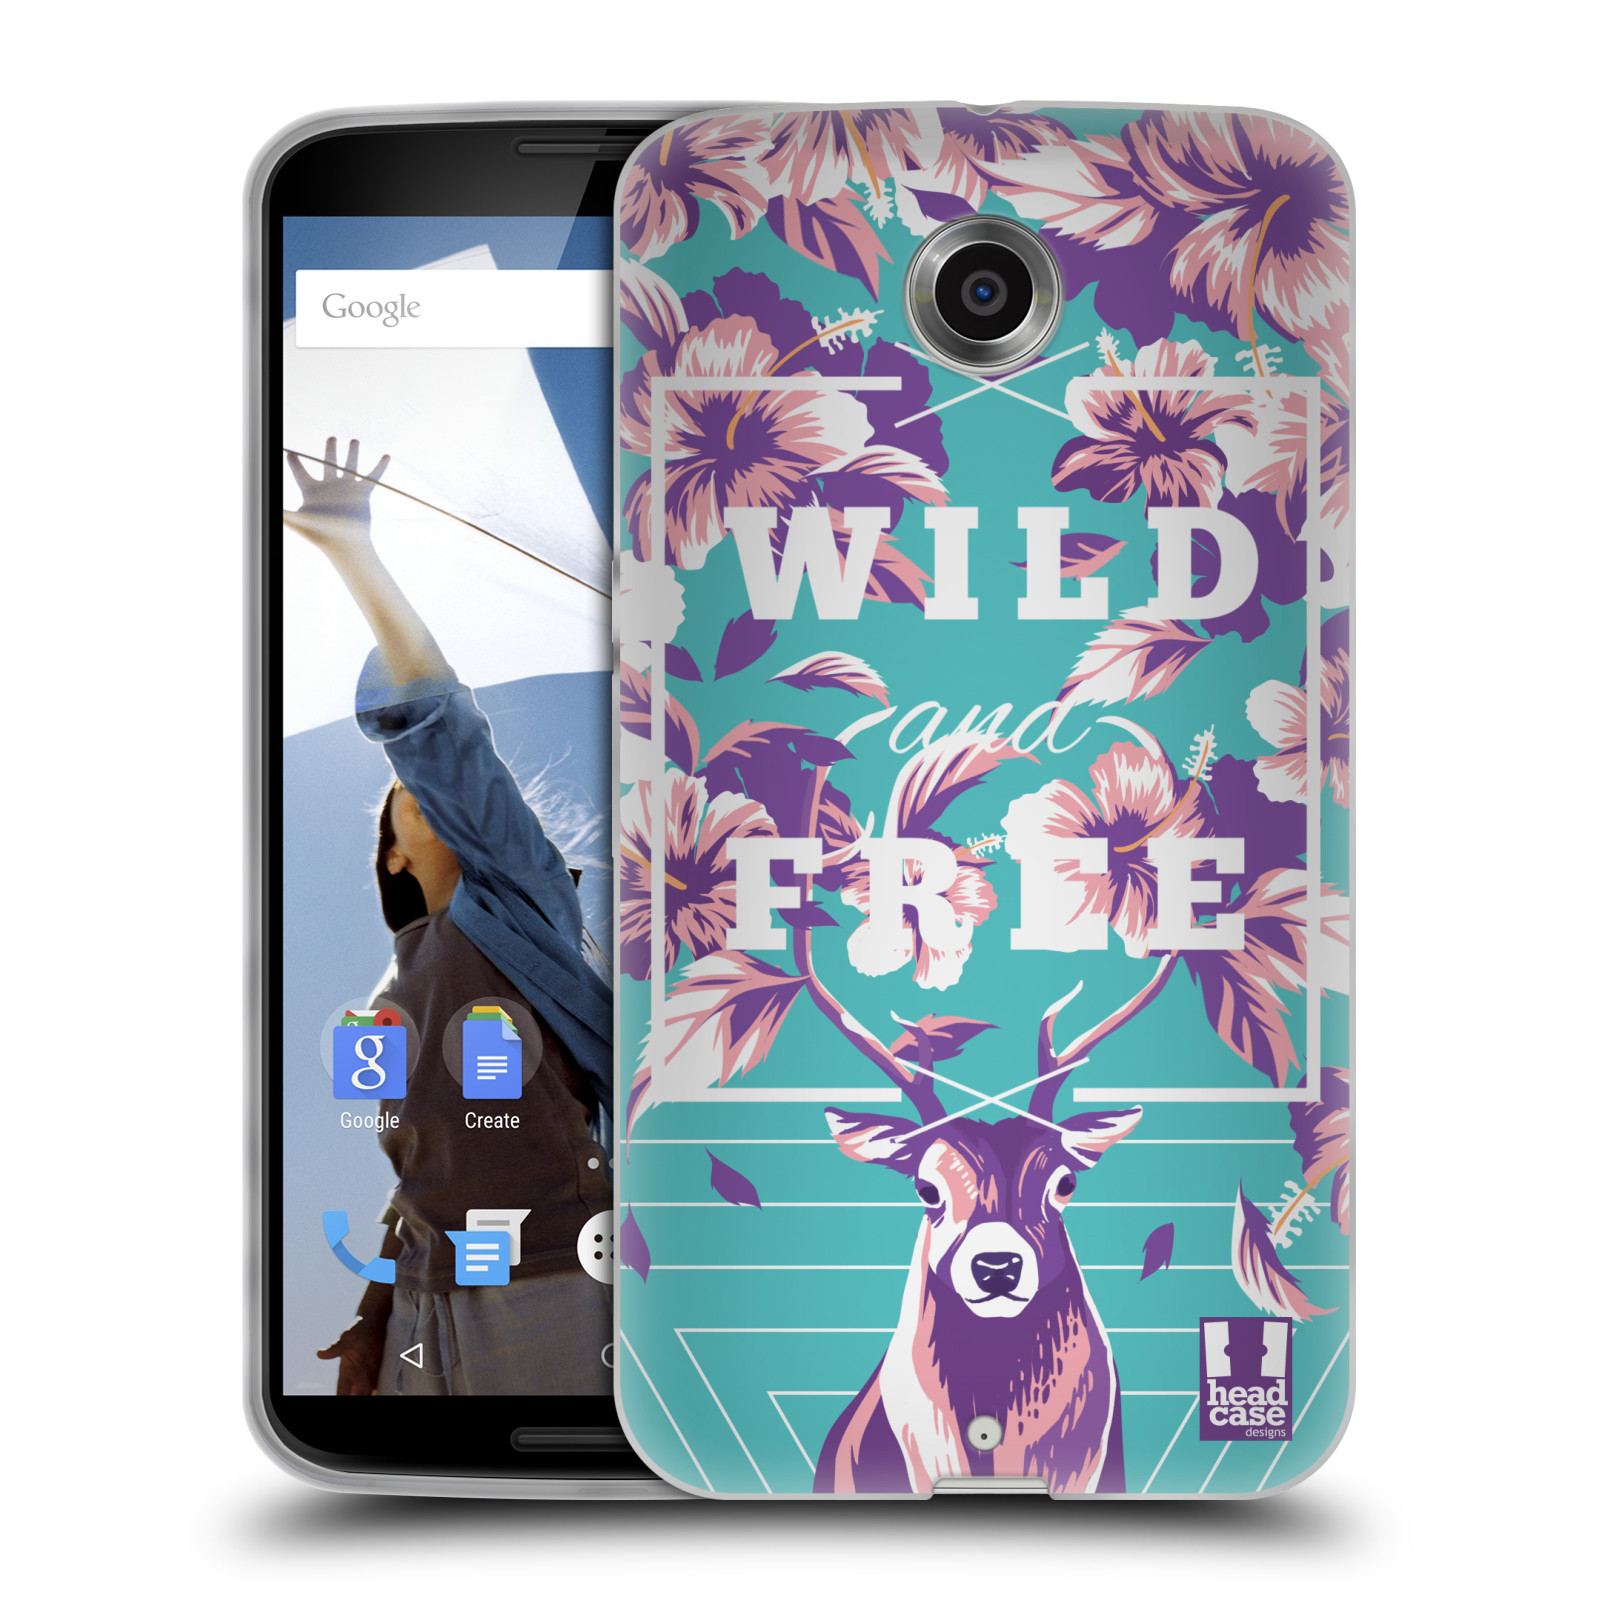 HEAD-CASE-DESIGNS-LEBENDIGER-DJUNGLE-SOFT-GEL-HULLE-FUR-MOTOROLA-HANDYS